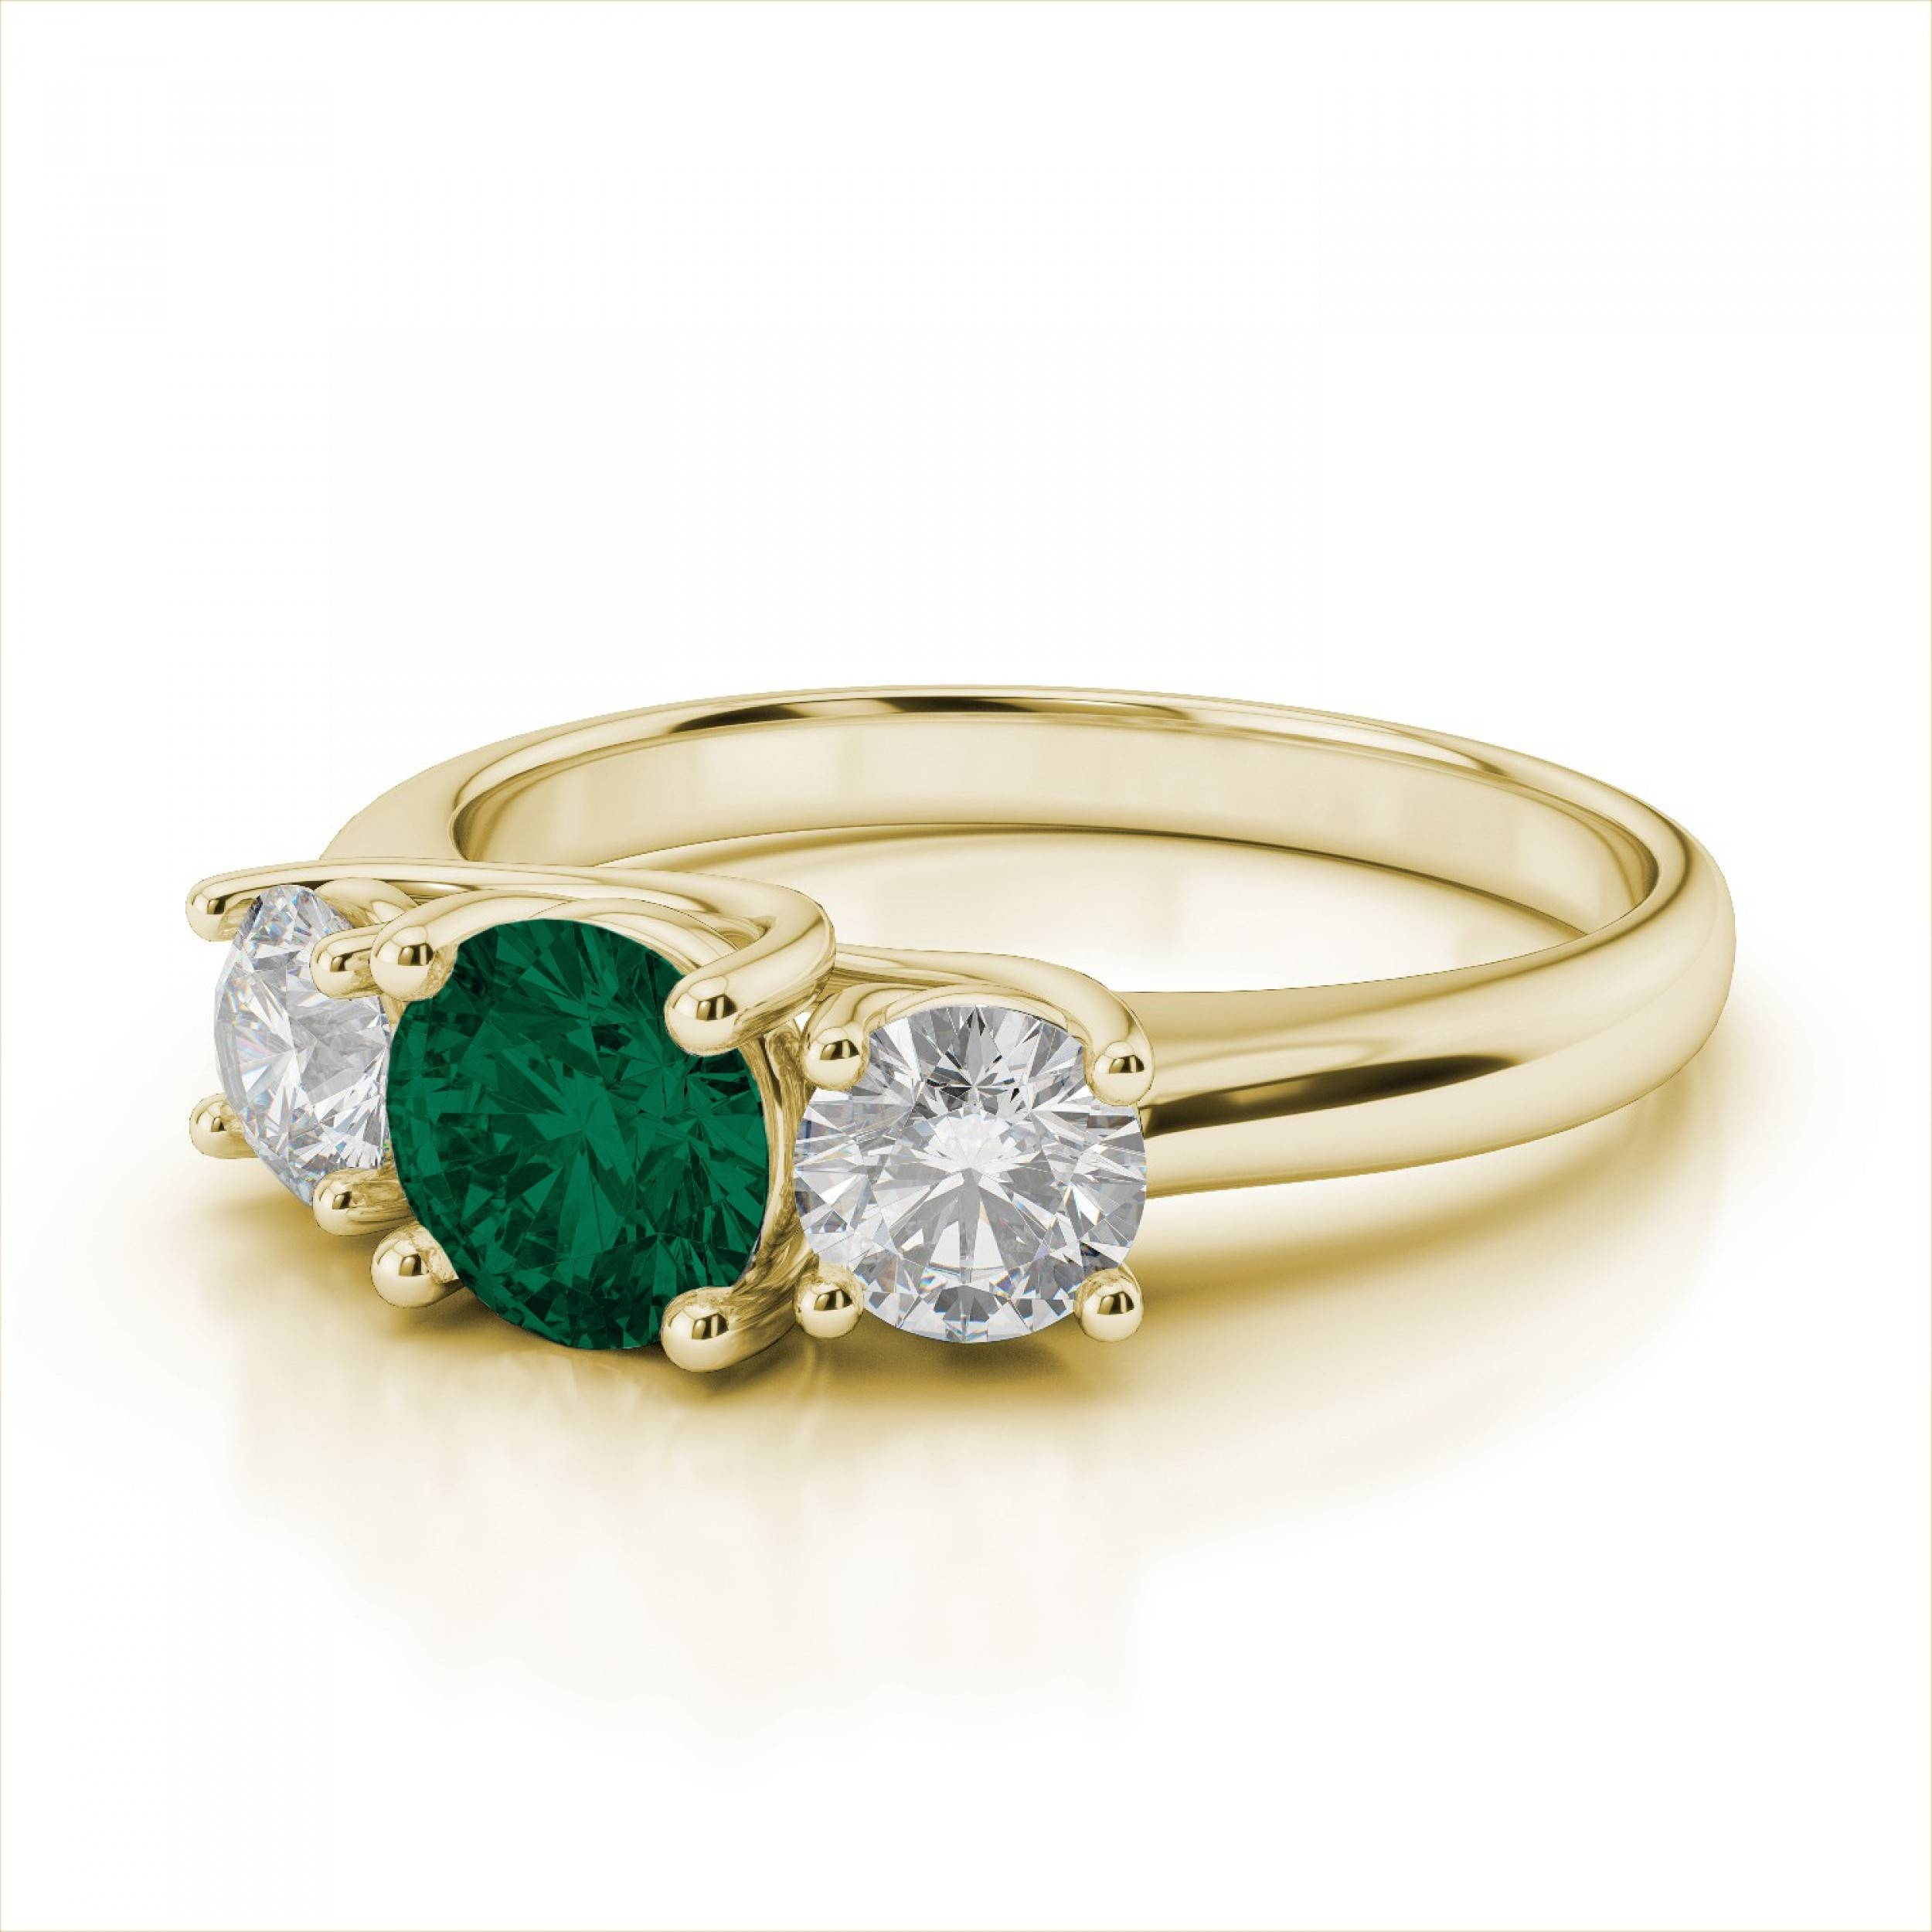 Stone Emerald Gemstone And Diamond Engagement Ring In 18K Yellow Gold Regarding Engagement Rings With Yellow Stone (View 10 of 15)